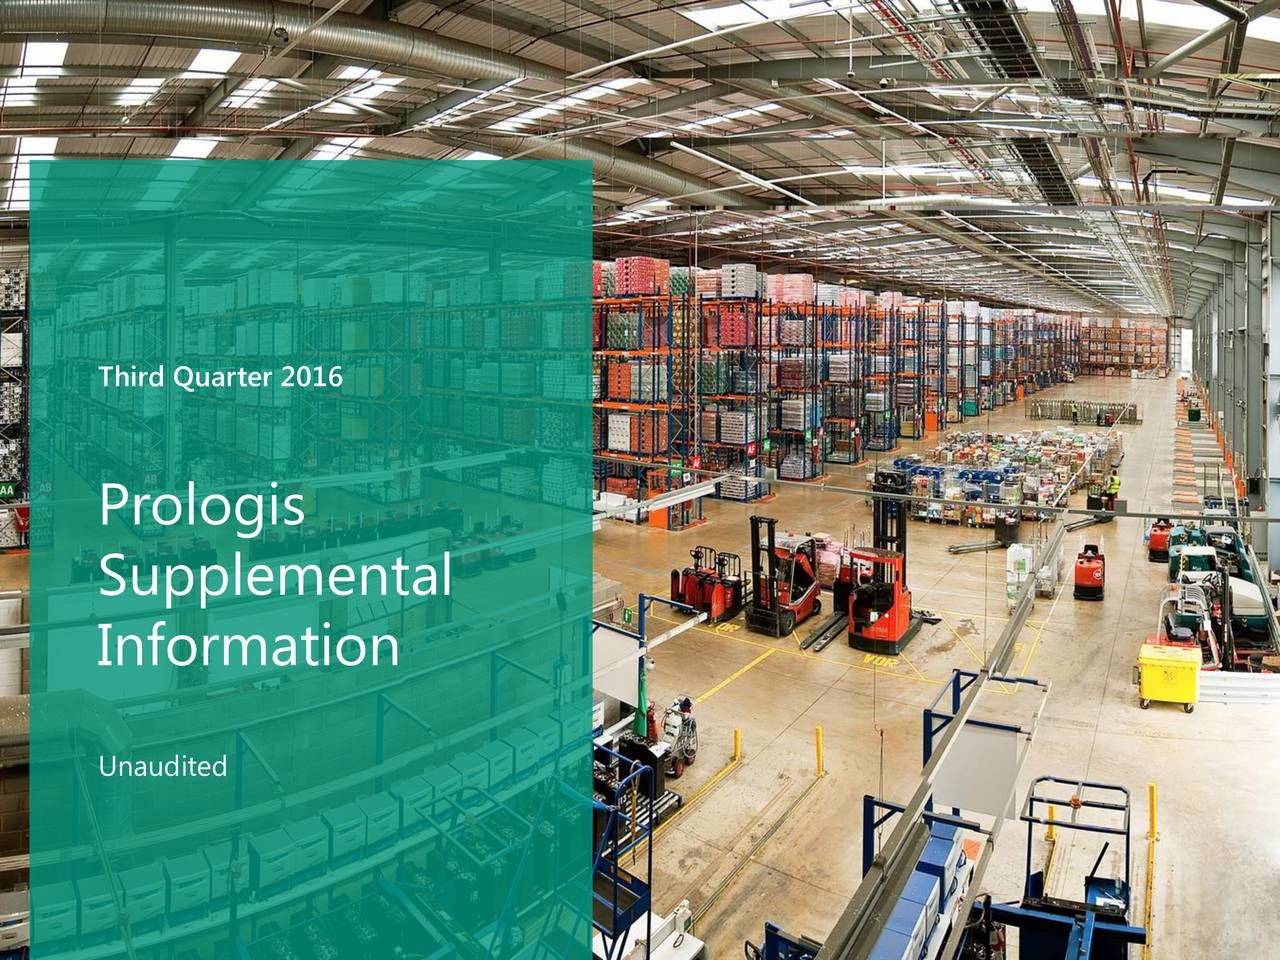 Prologis Supplemental Information Unaudited